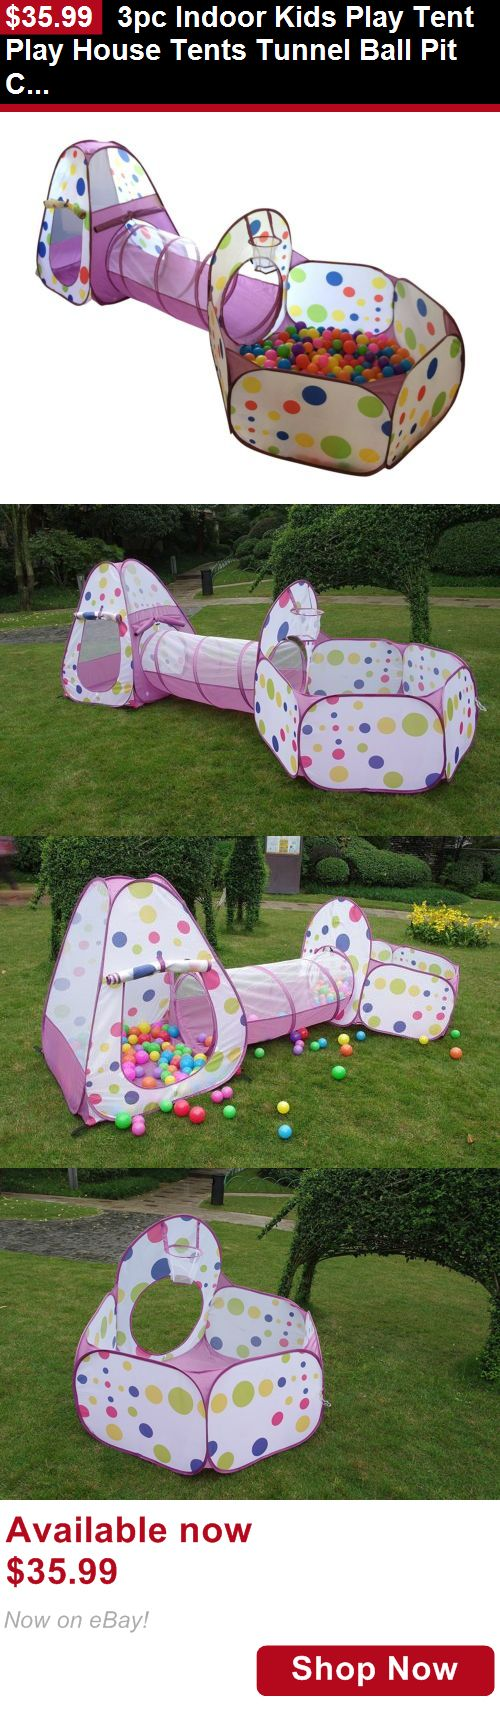 Baby play shades and tents: 3Pc Indoor Kids Play Tent Play House Tents Tunnel Ball Pit Christmas Gift Purple BUY IT NOW ONLY: $35.99